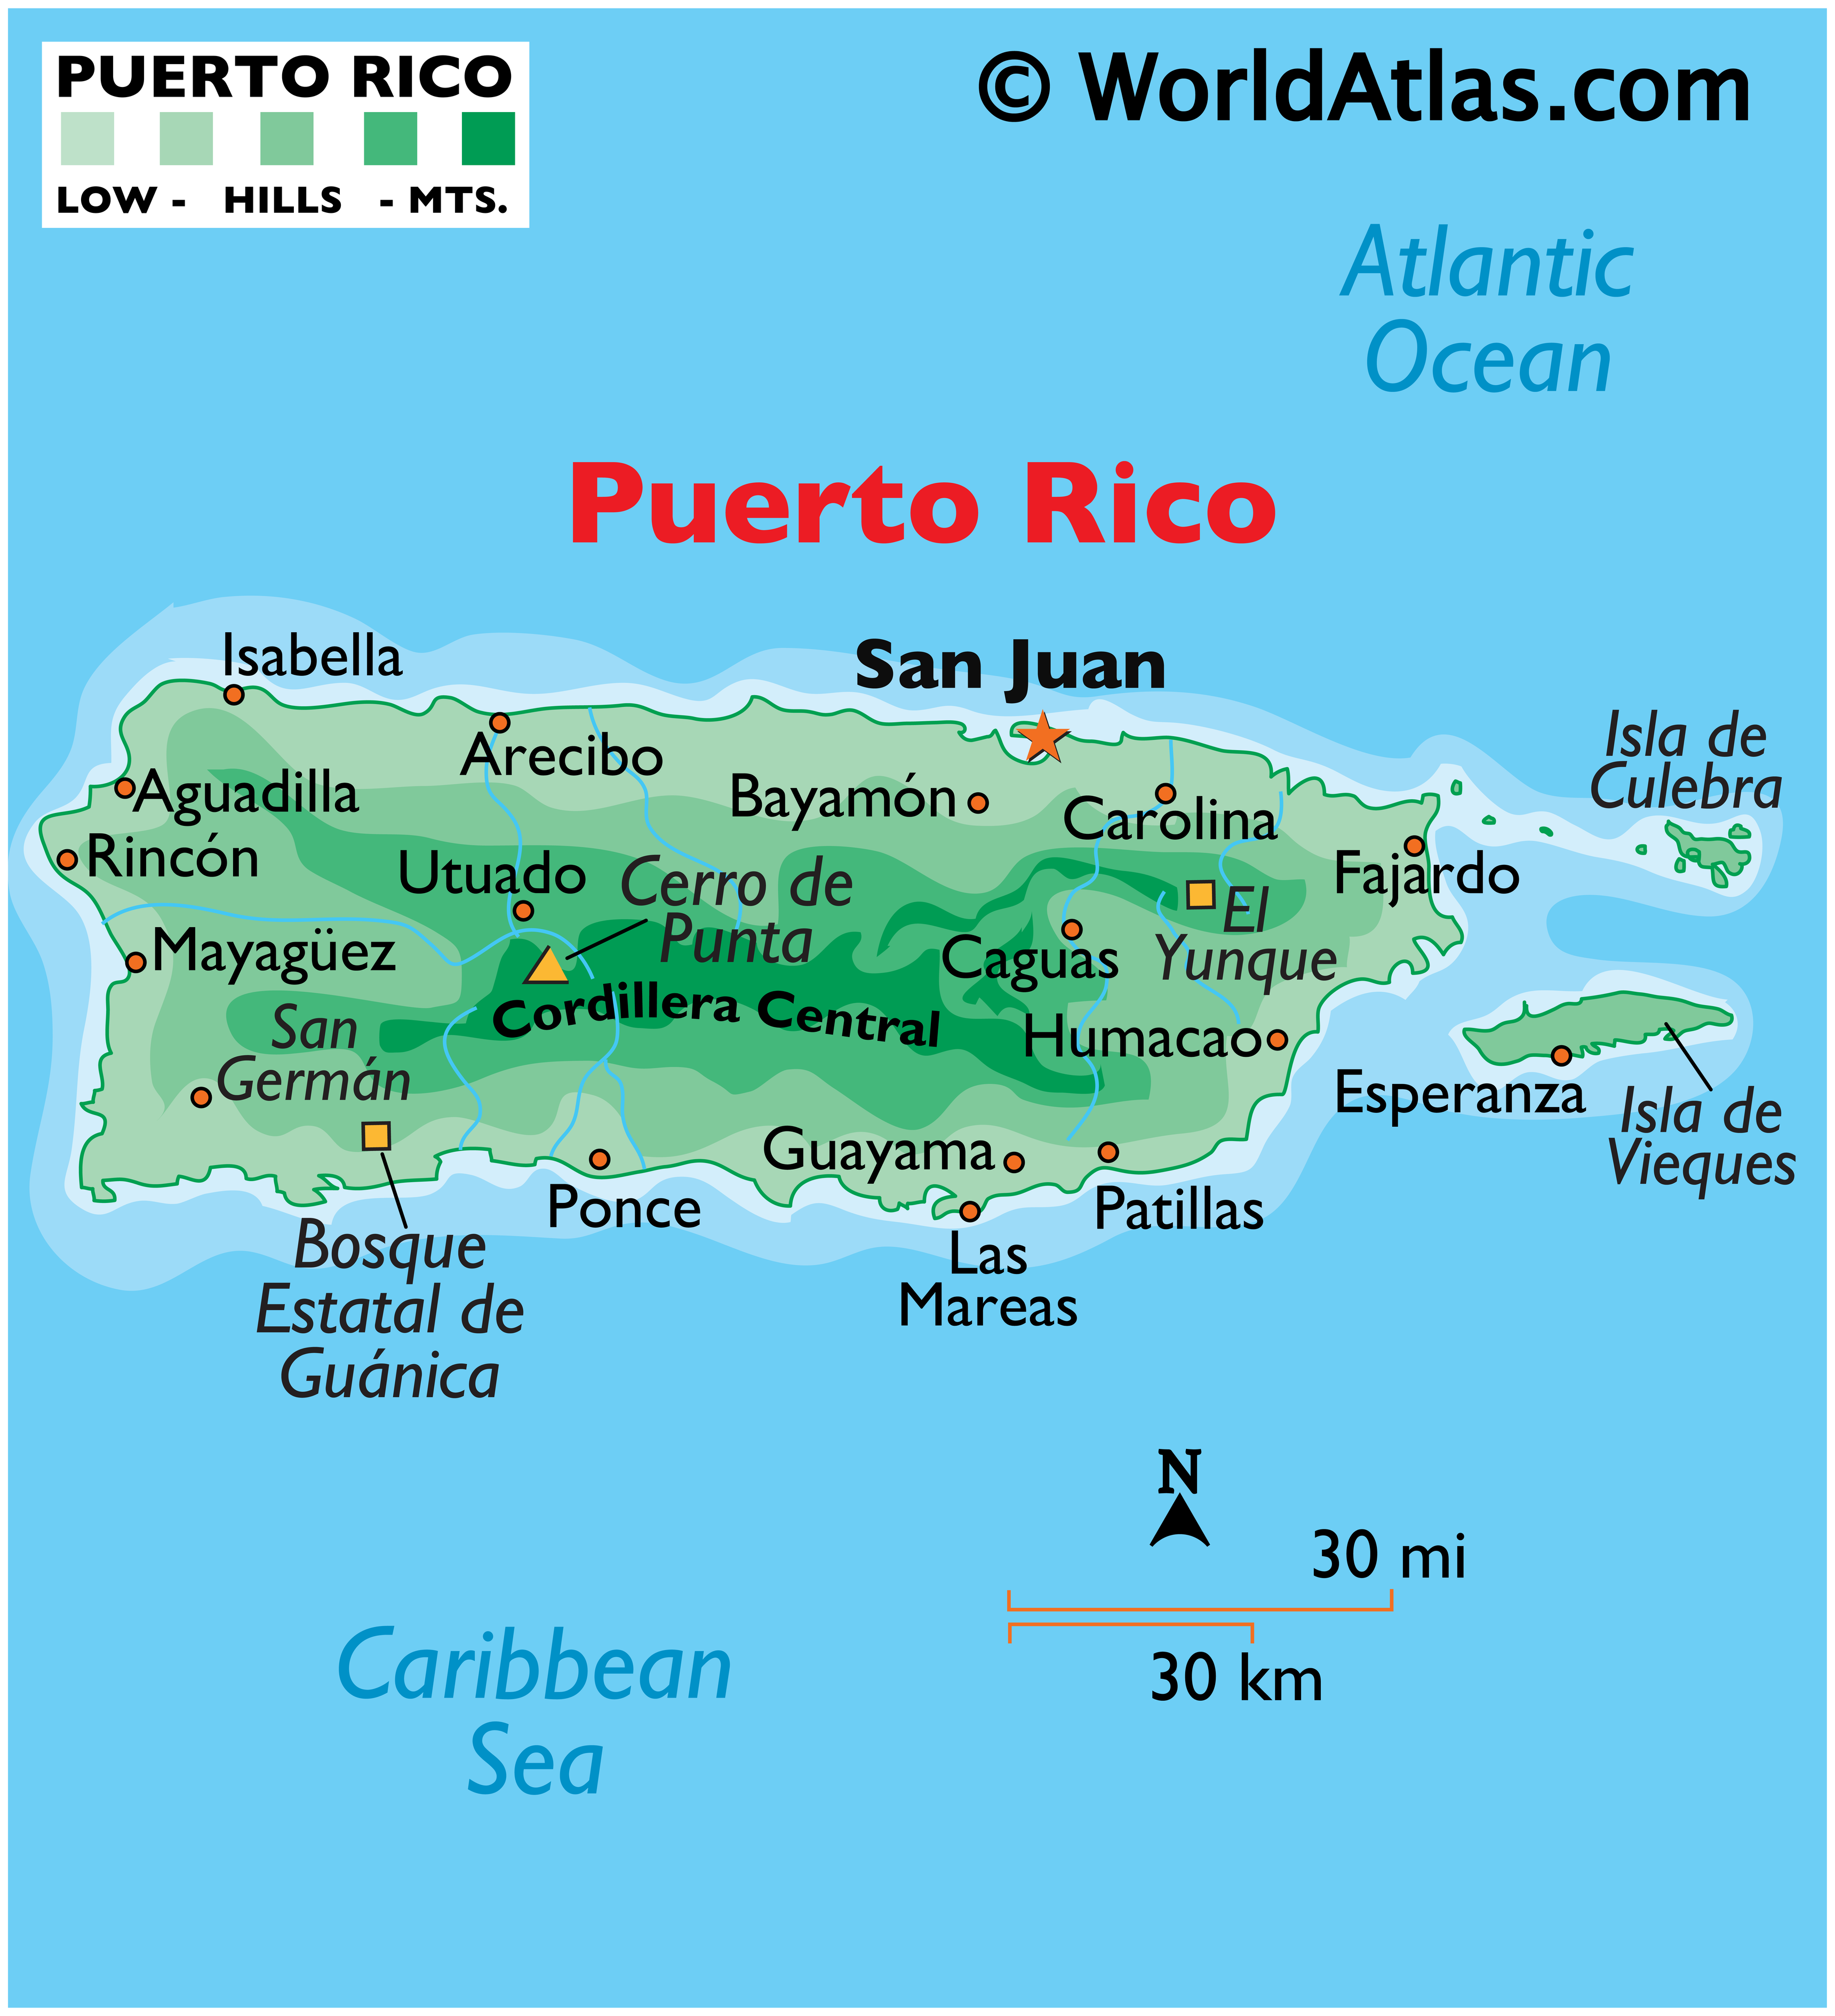 Physical Map of Puerto Rico showing relief, islands, mountain ranges, important settlements, etc.